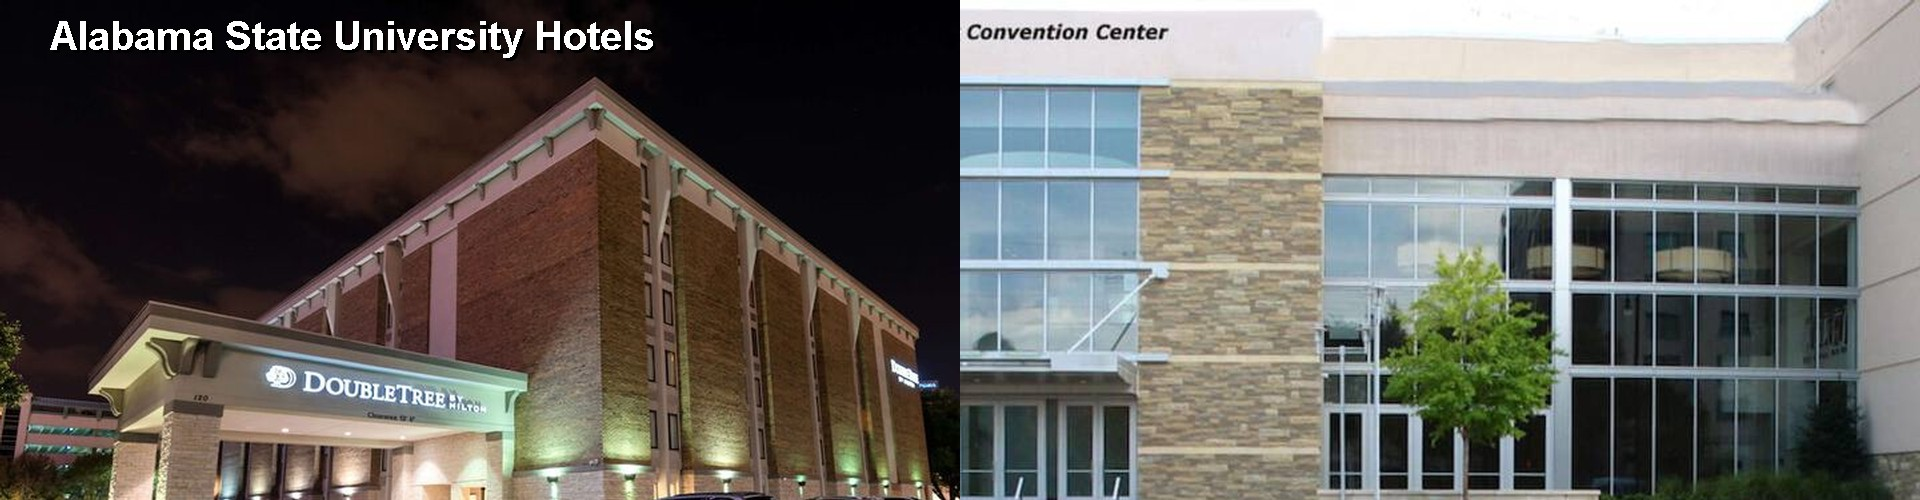 $39+ Hotels Near Alabama State University in Montgomery AL